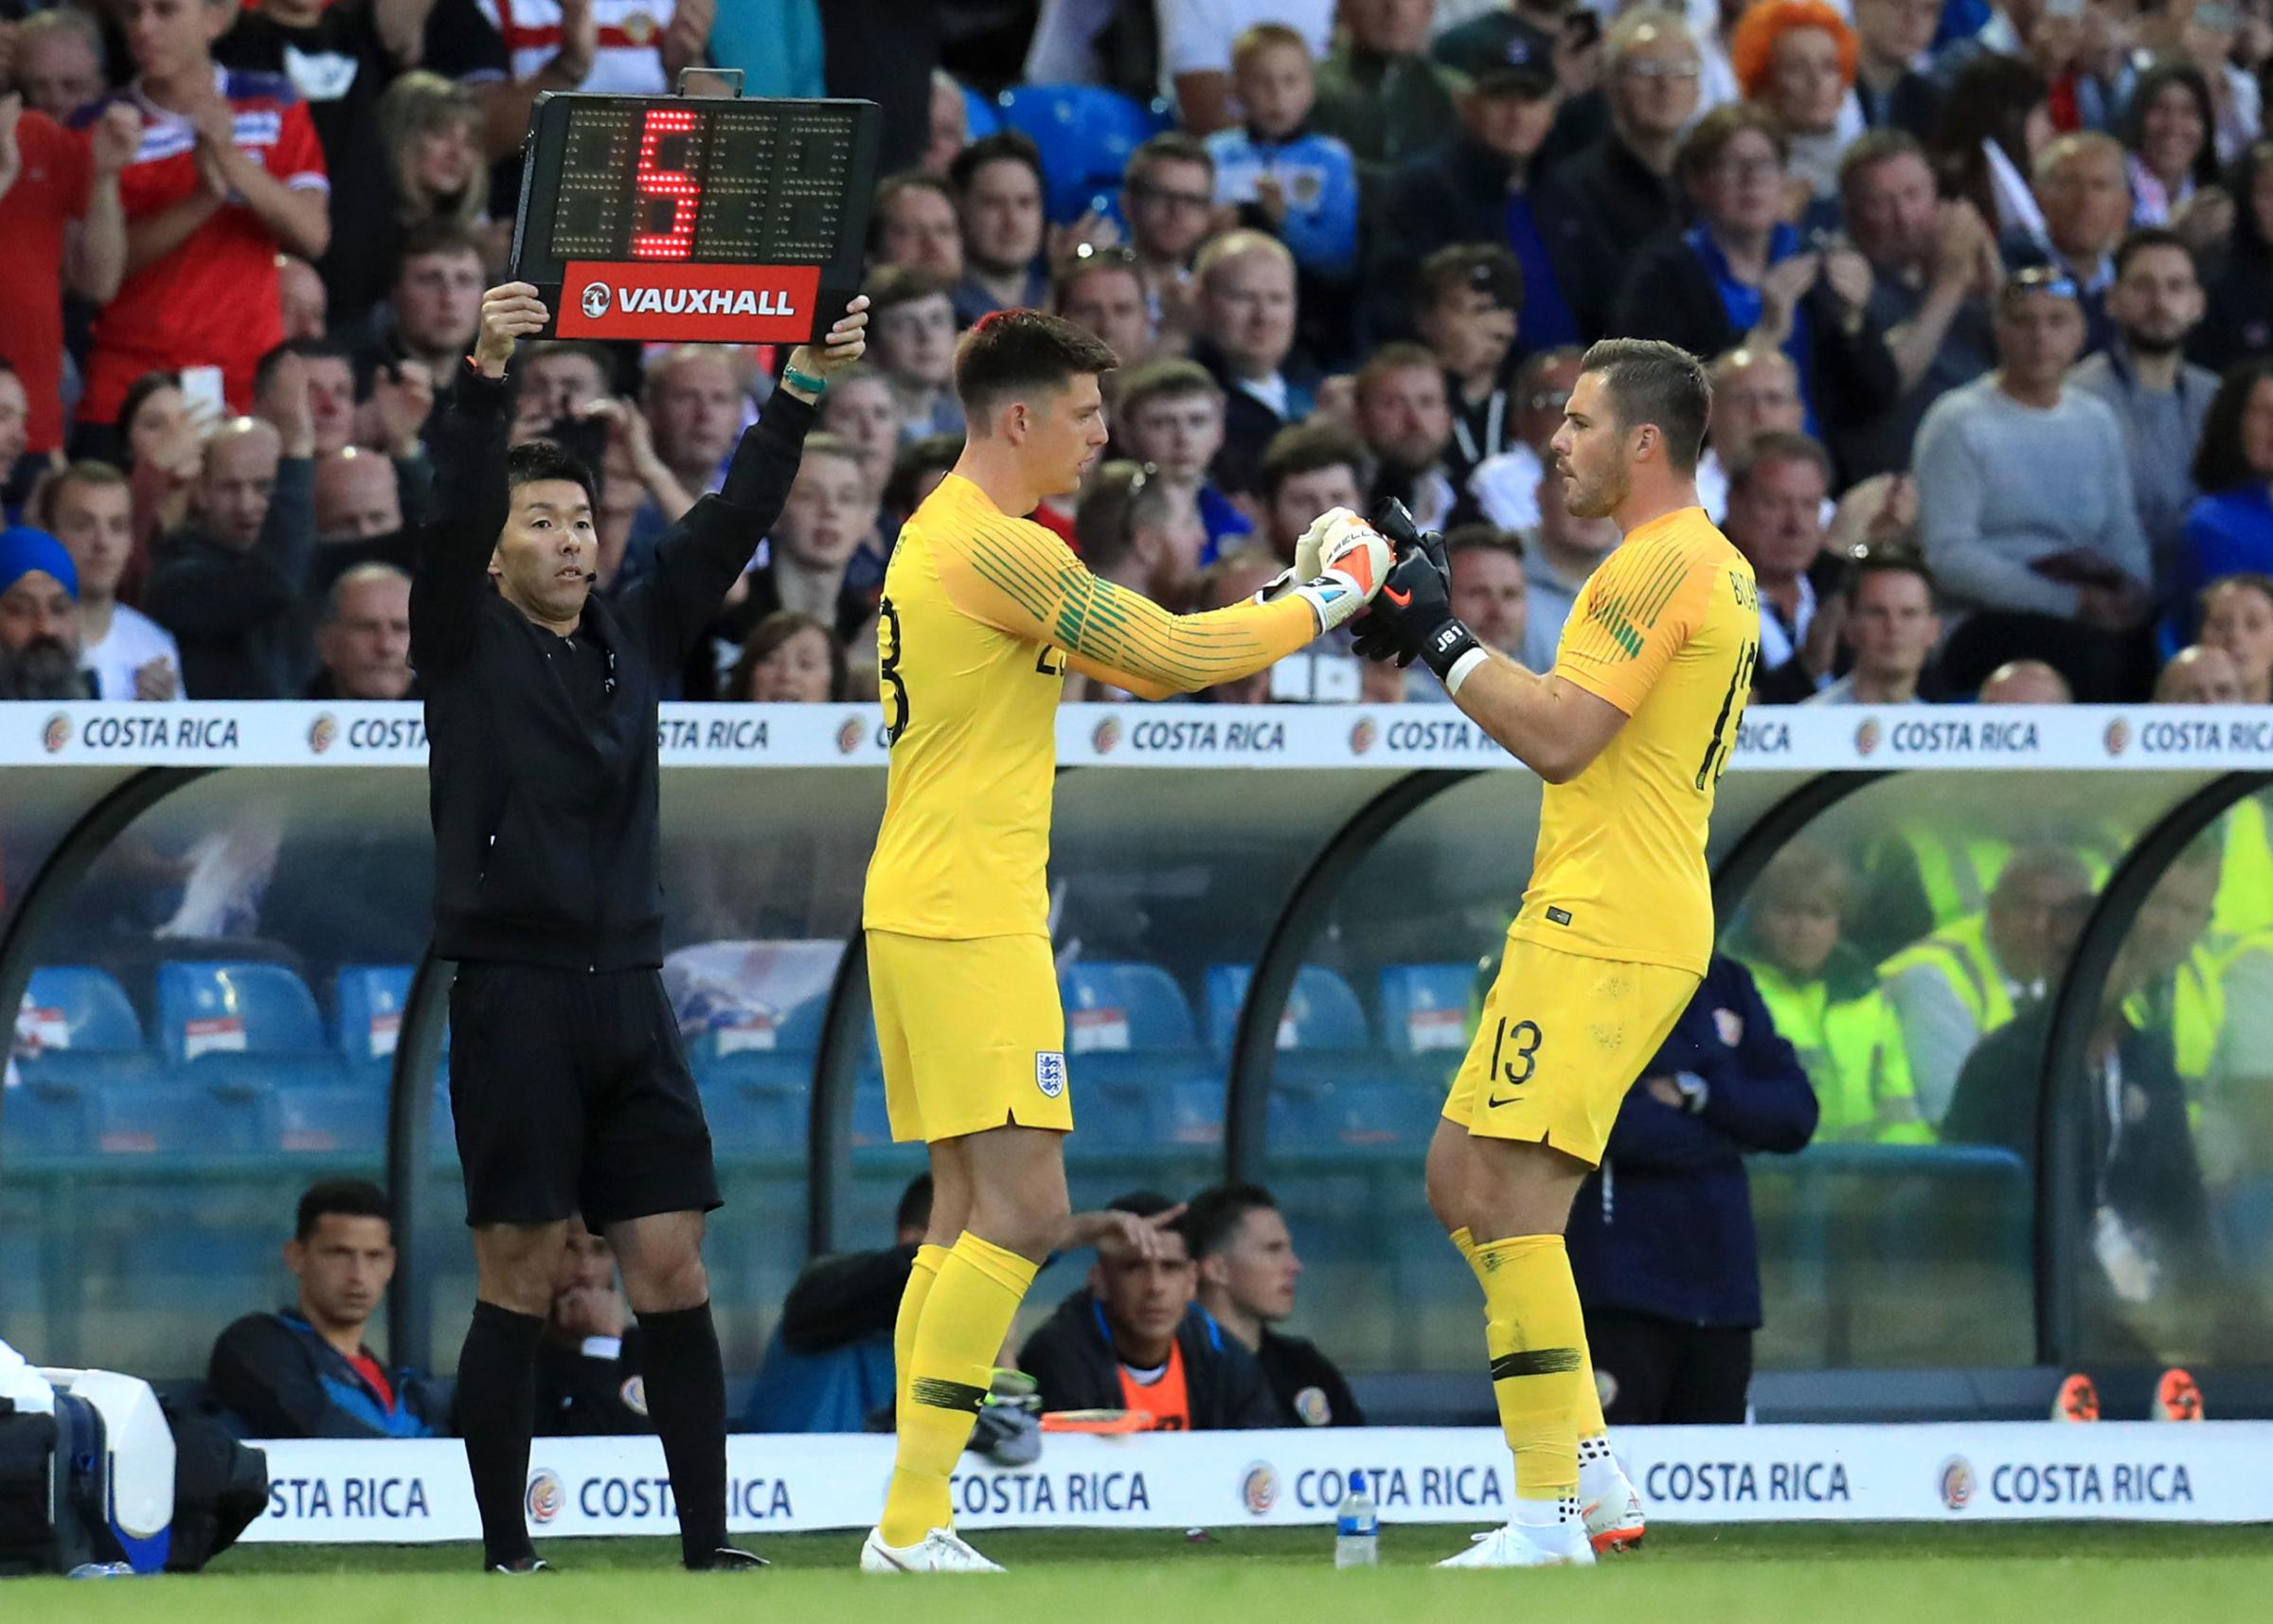 Burnley's Nick Pope replaces Jack Butland and makes his England debut